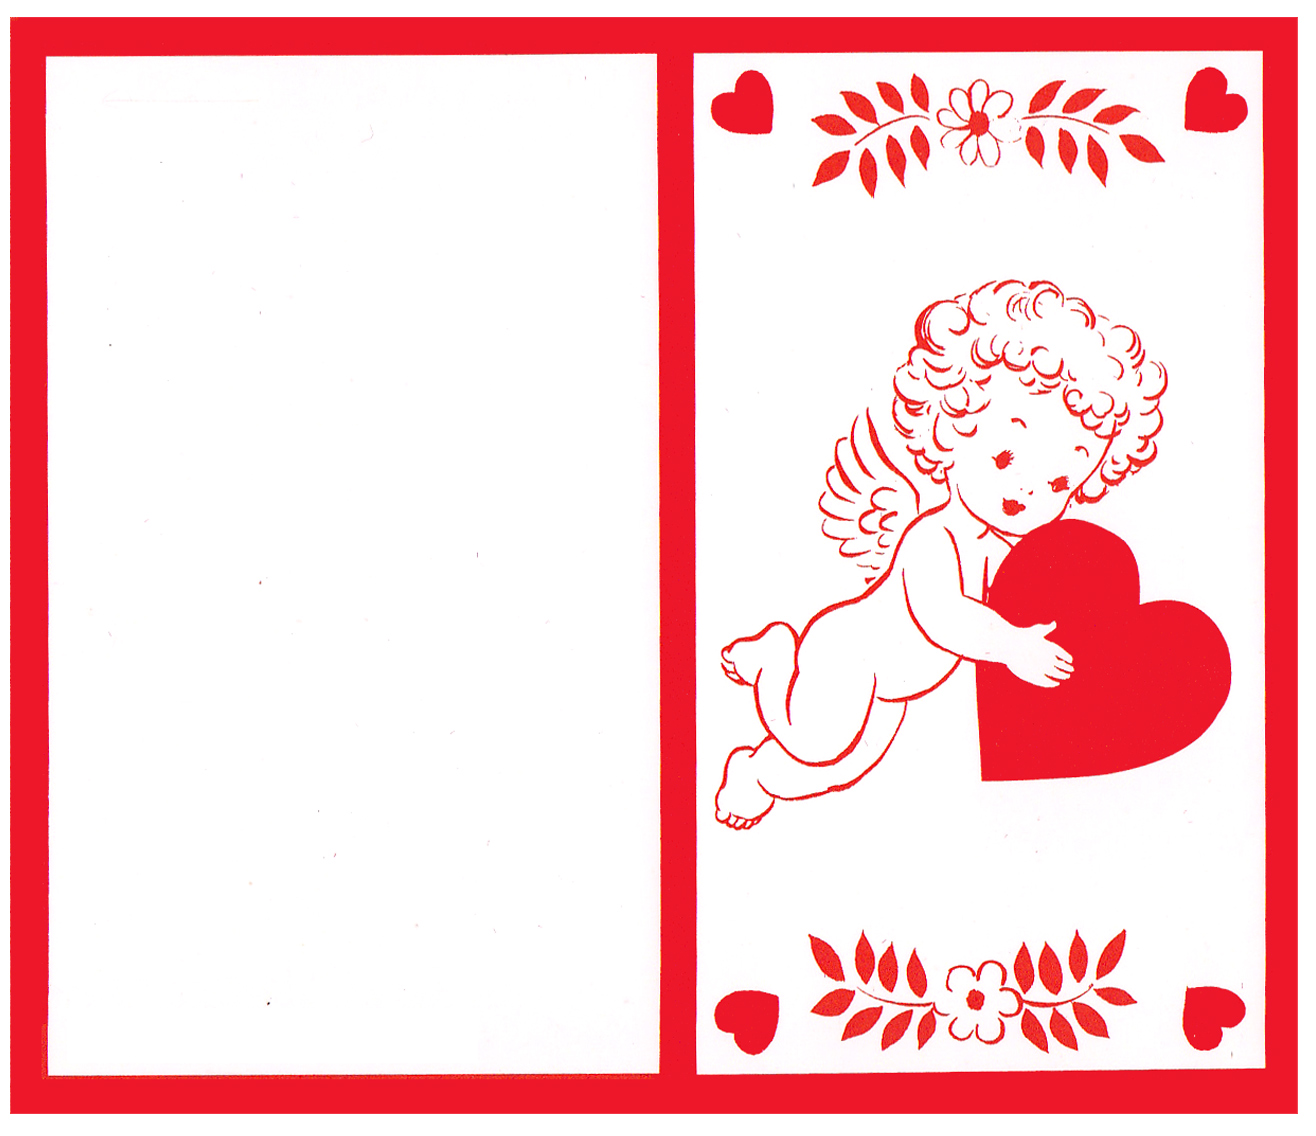 01 Birthday Wishes: The Valentine's Day Card